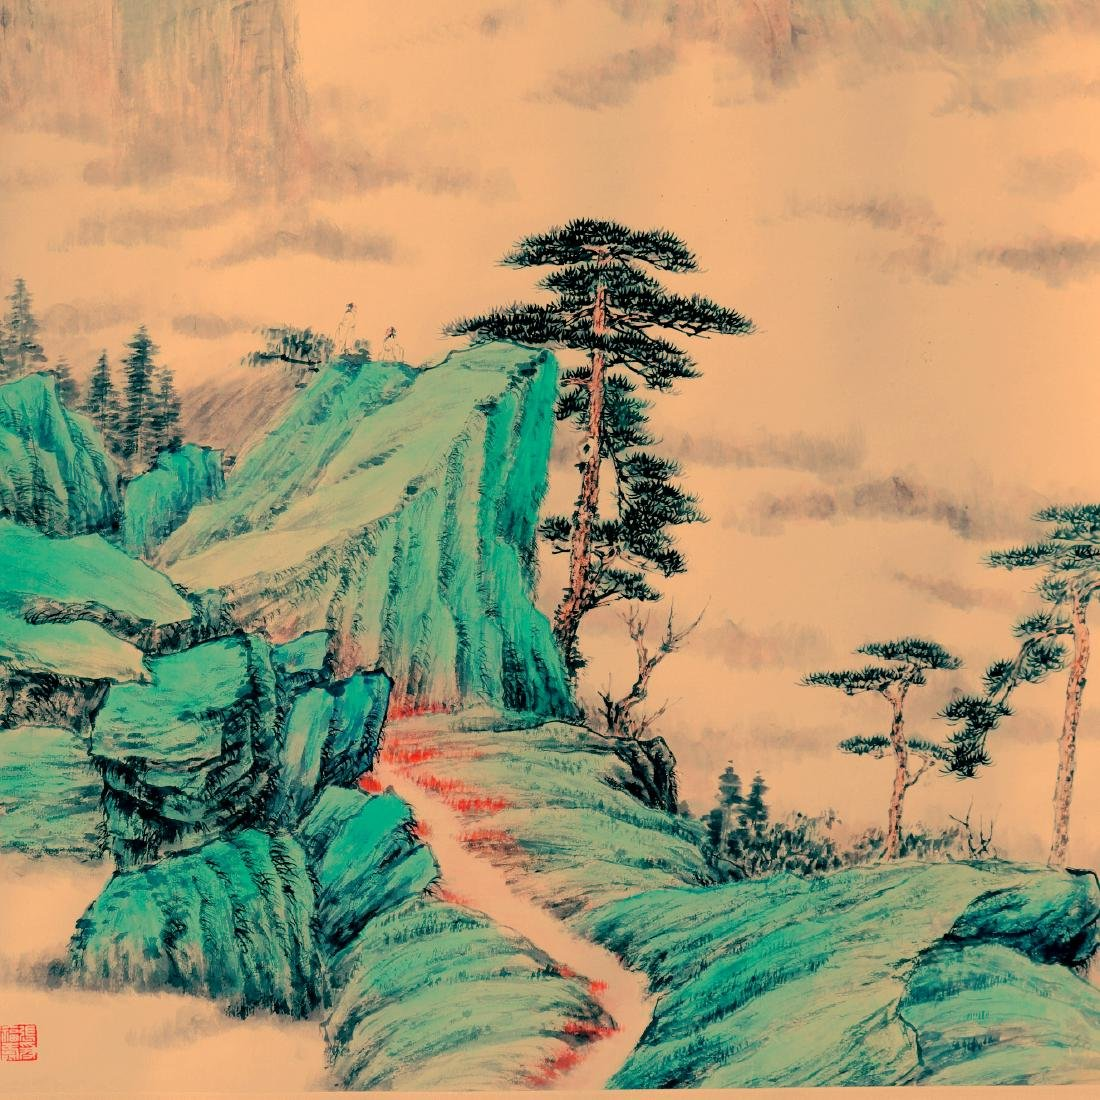 Attributed to Zhang Daqian (Chinese Scroll Painting)